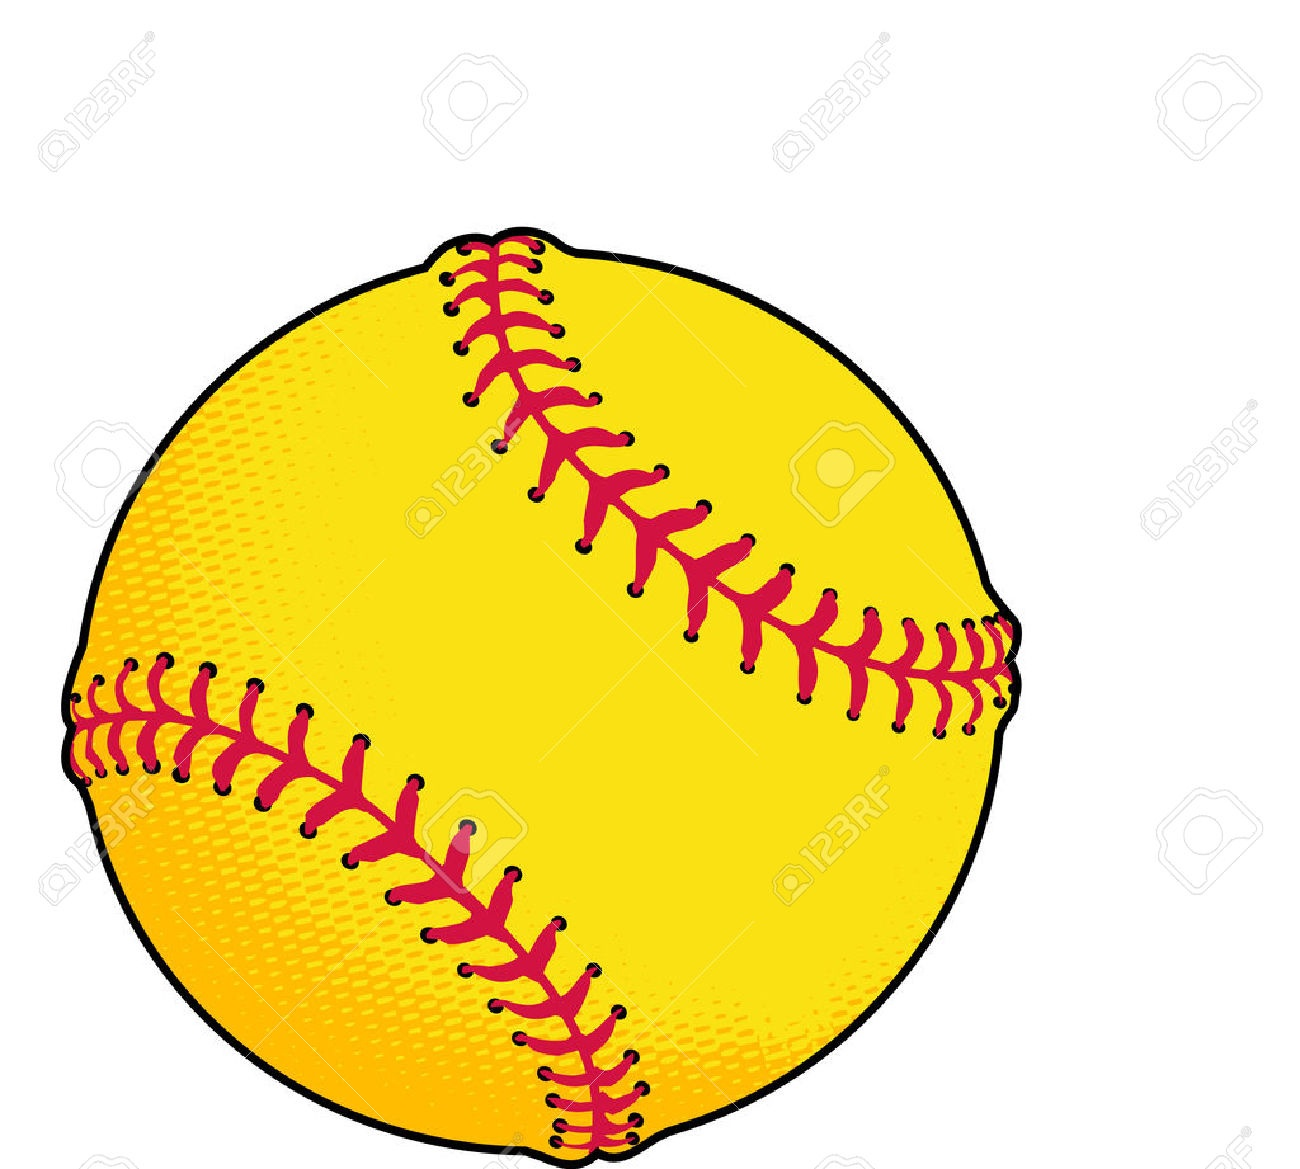 Free Softball Clipart   Free Download Best Free Softball Clipart On - Free Printable Softball Pictures